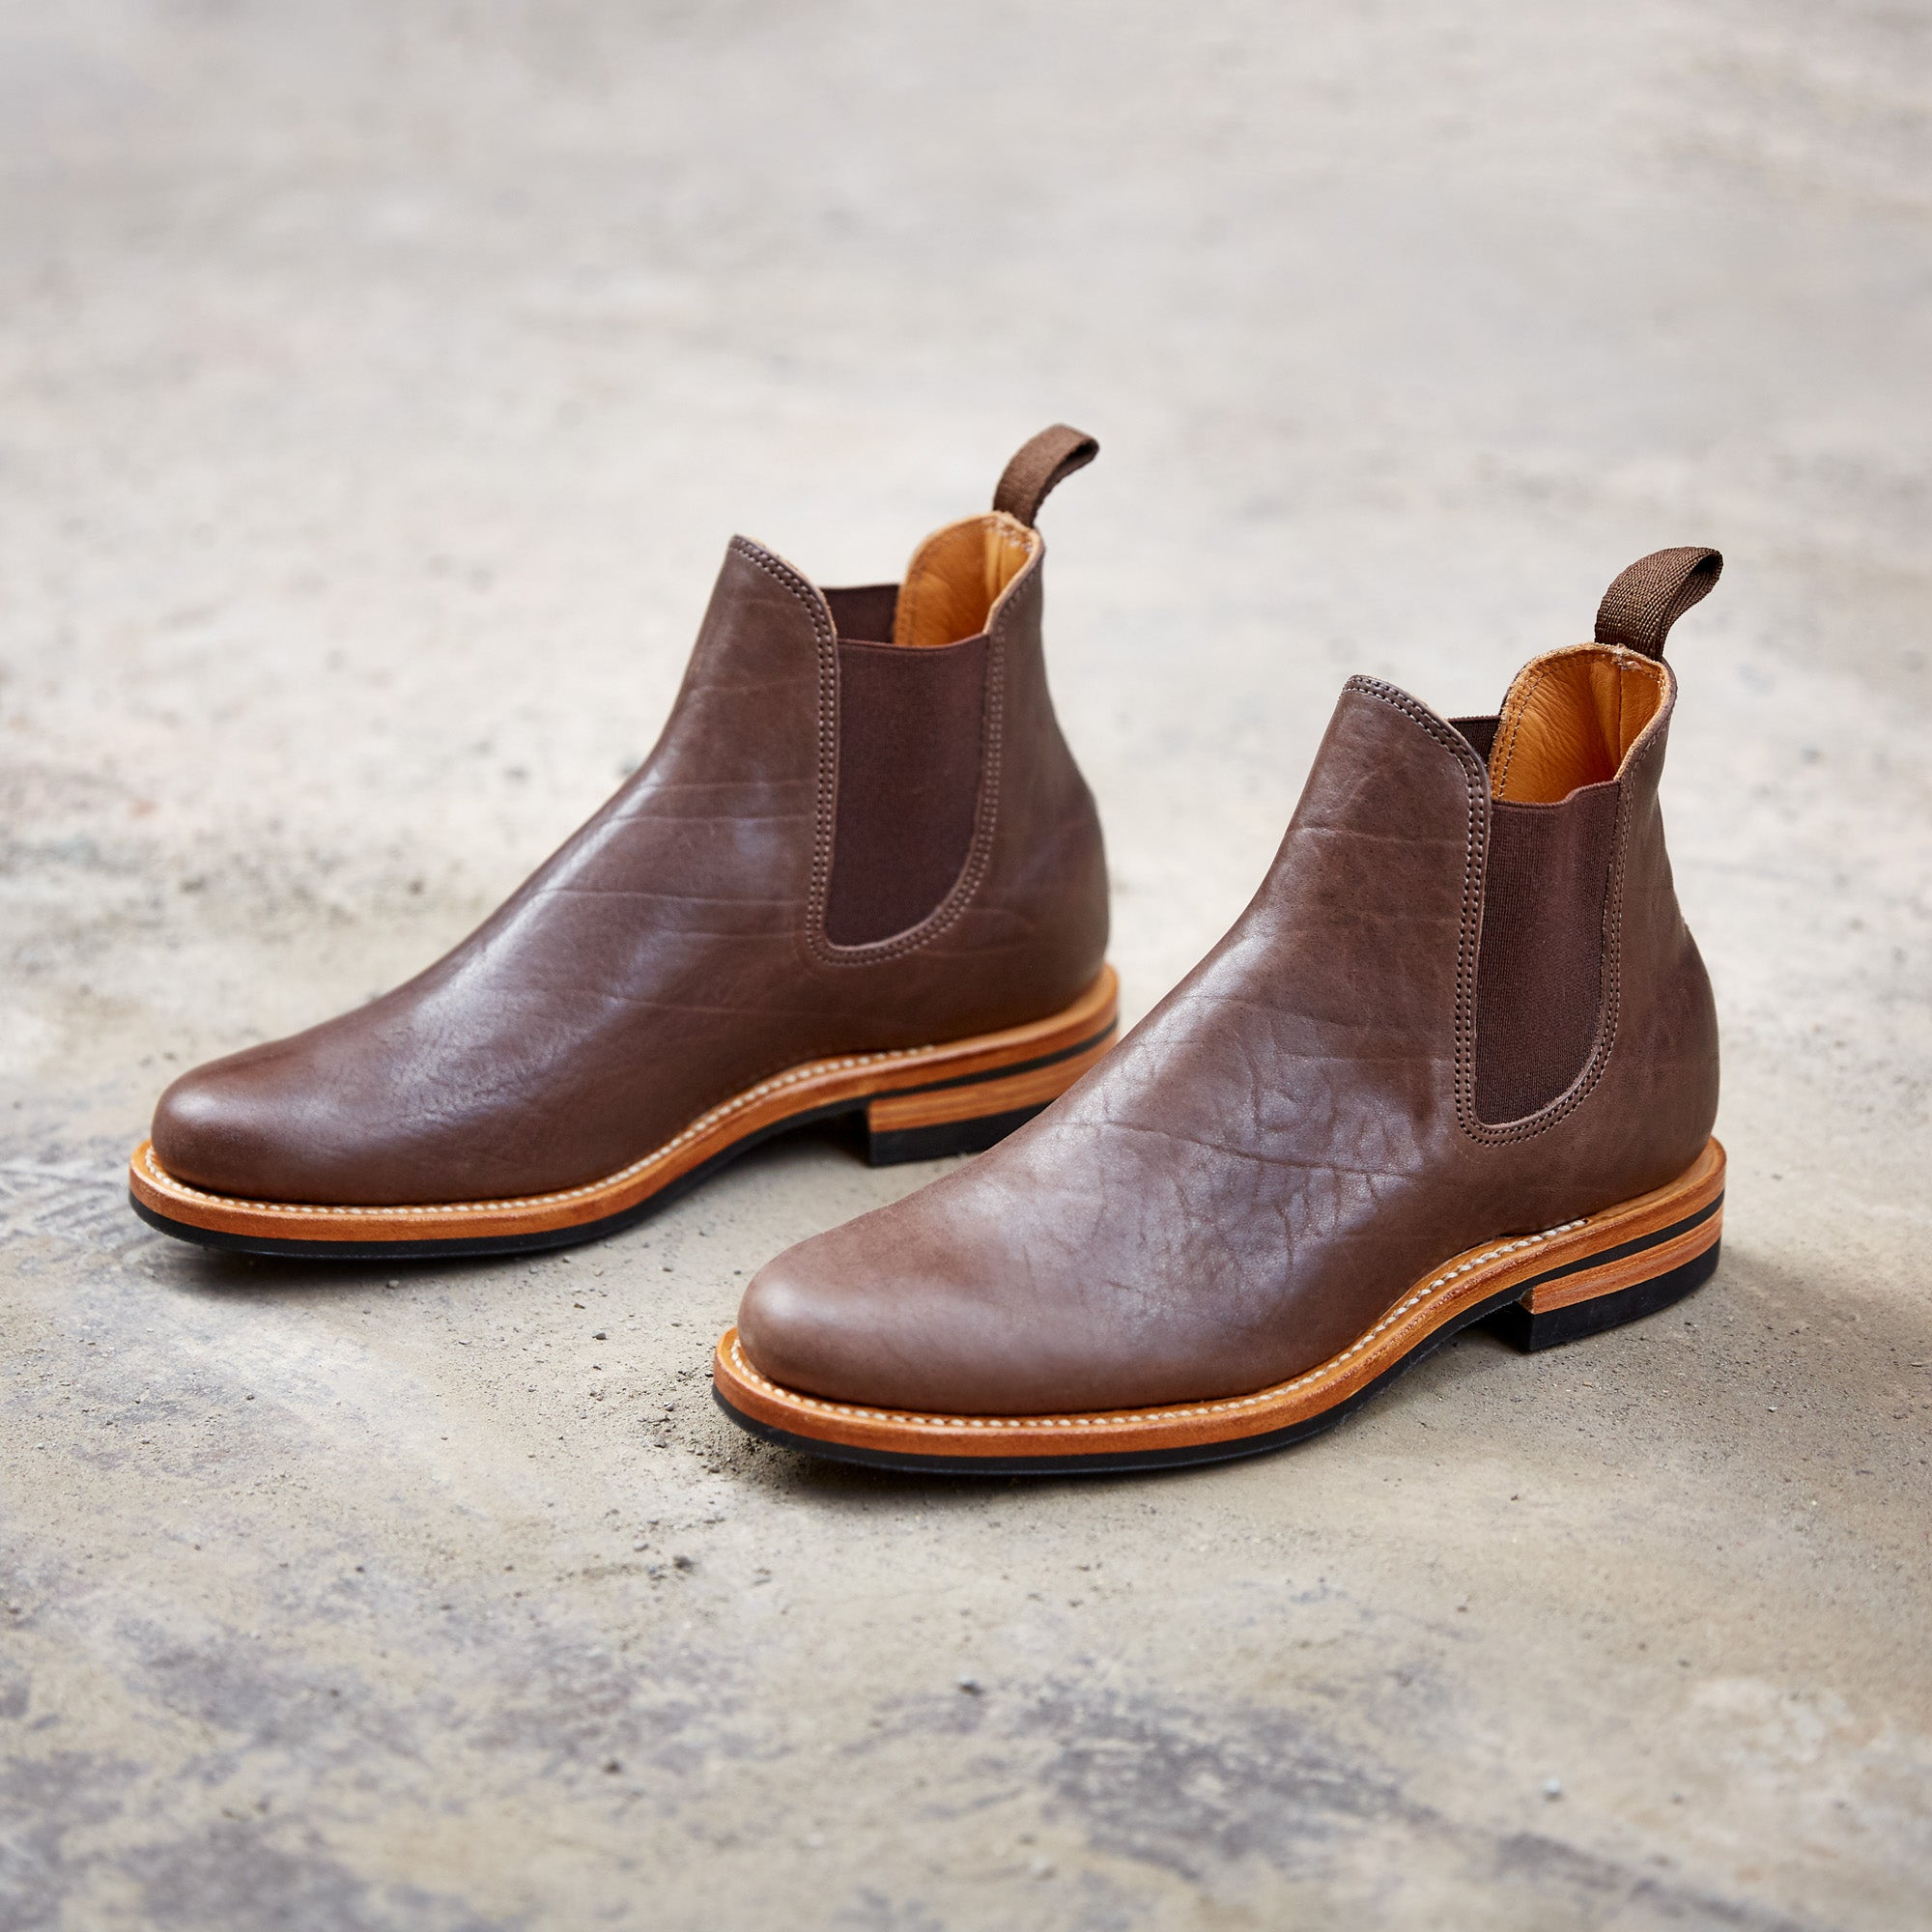 Division Road Dark Brown Washed Horsehide Chelsea Boot